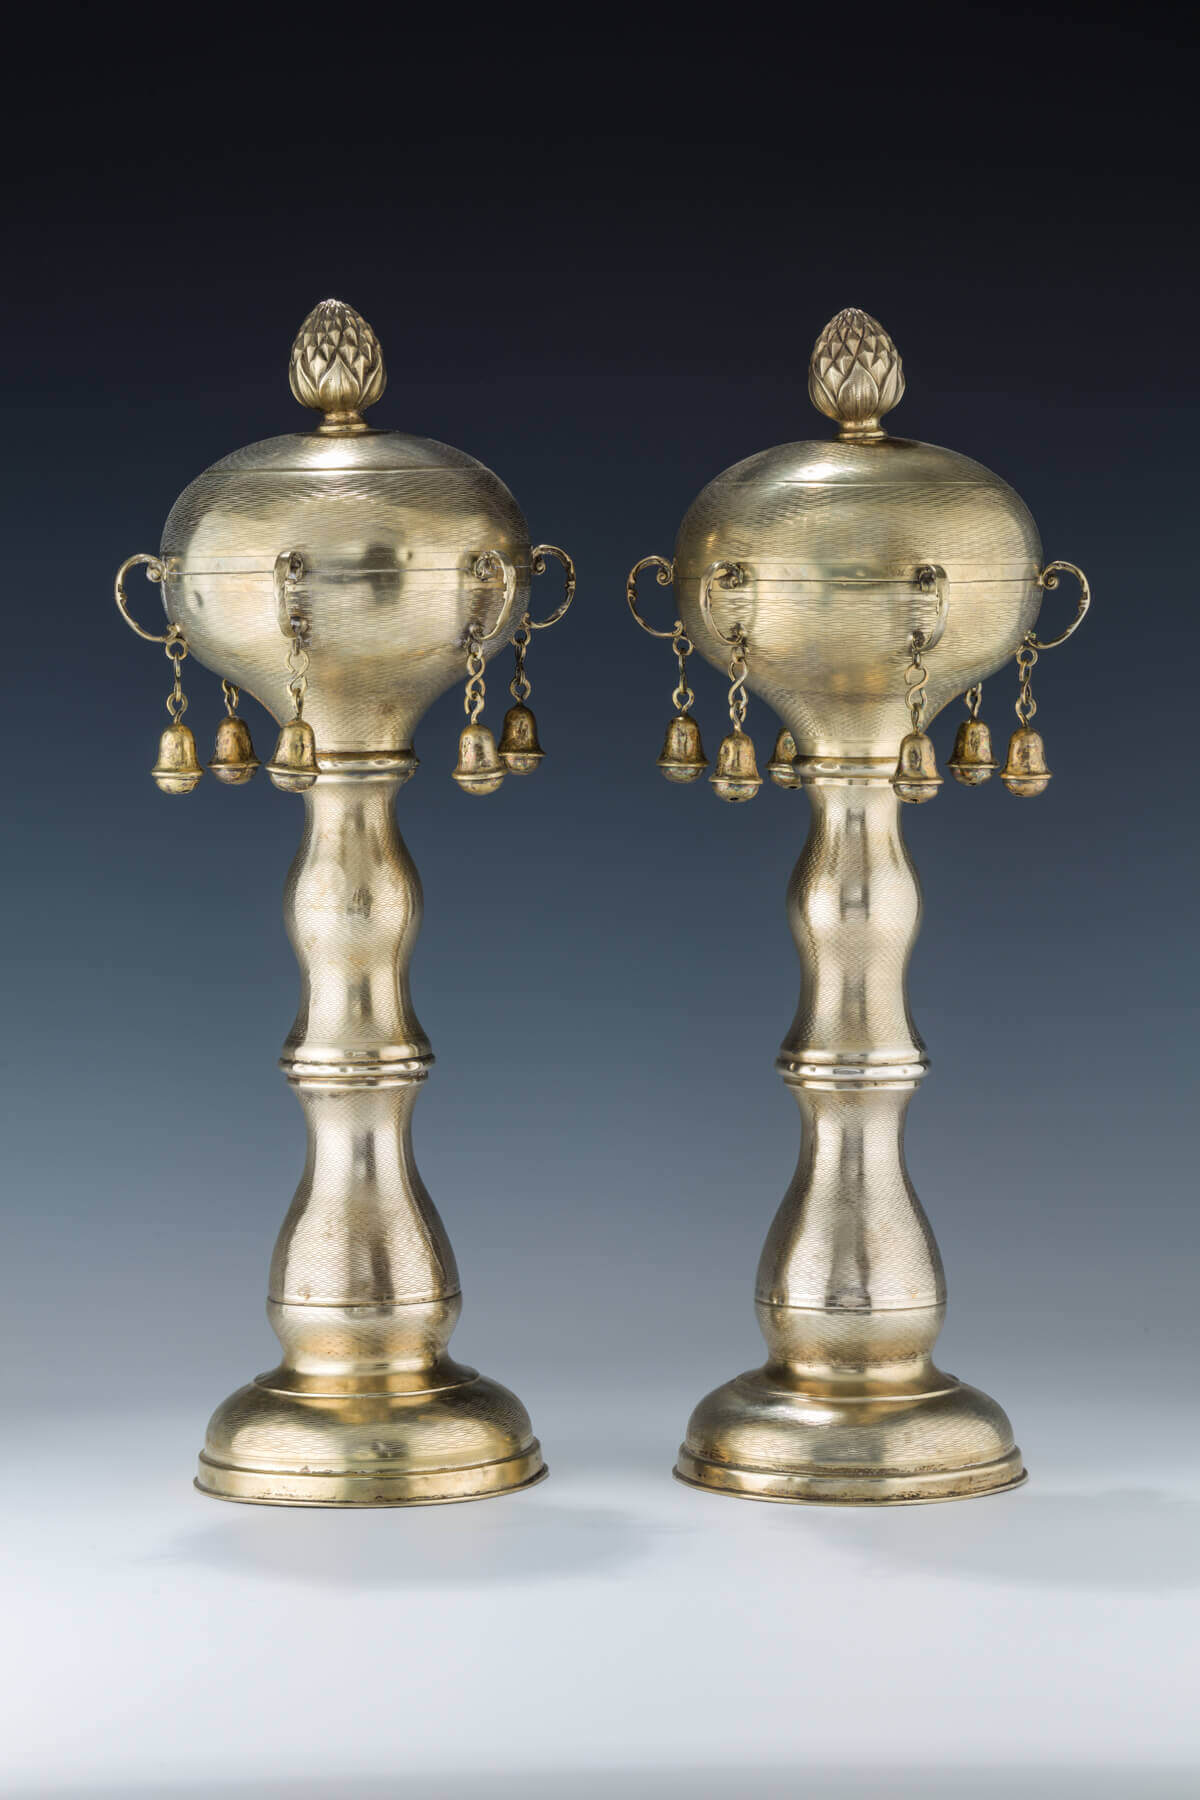 054. A MONUMENTAL PAIR OF GILDED SILVER TORAH FINIALS